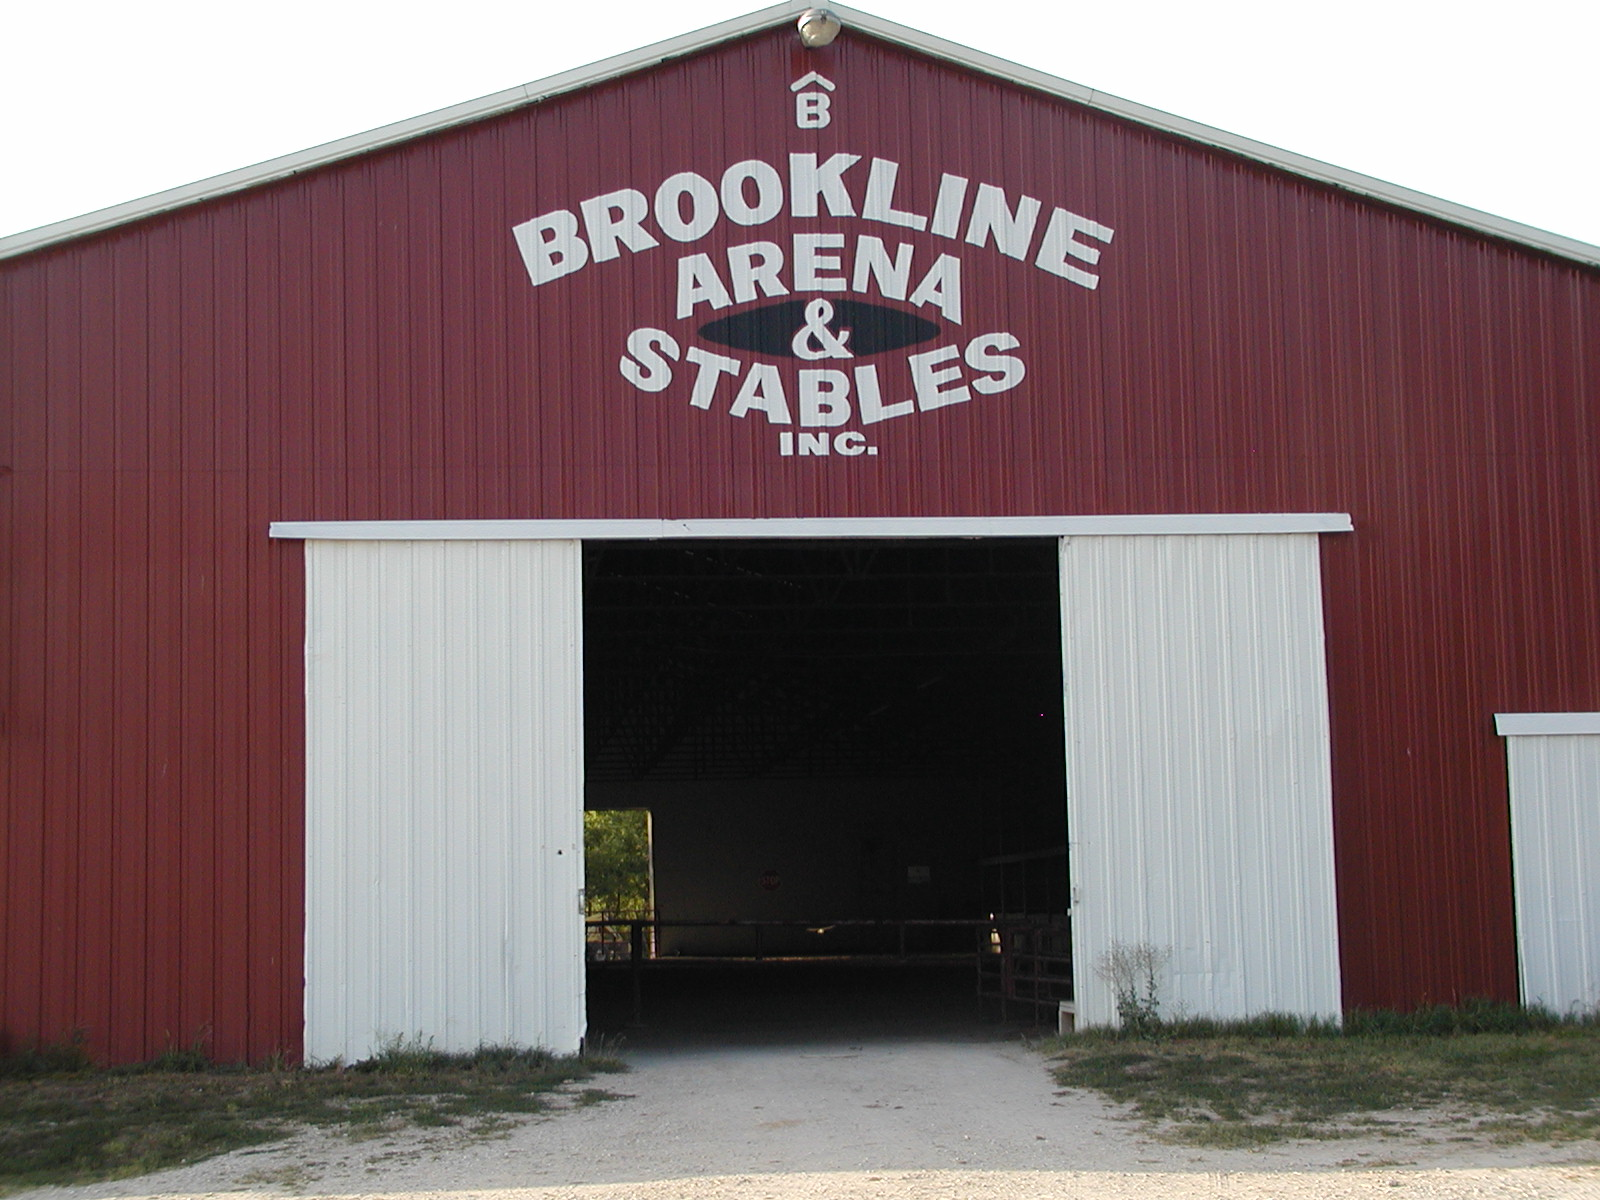 Brookline Arena and Stables